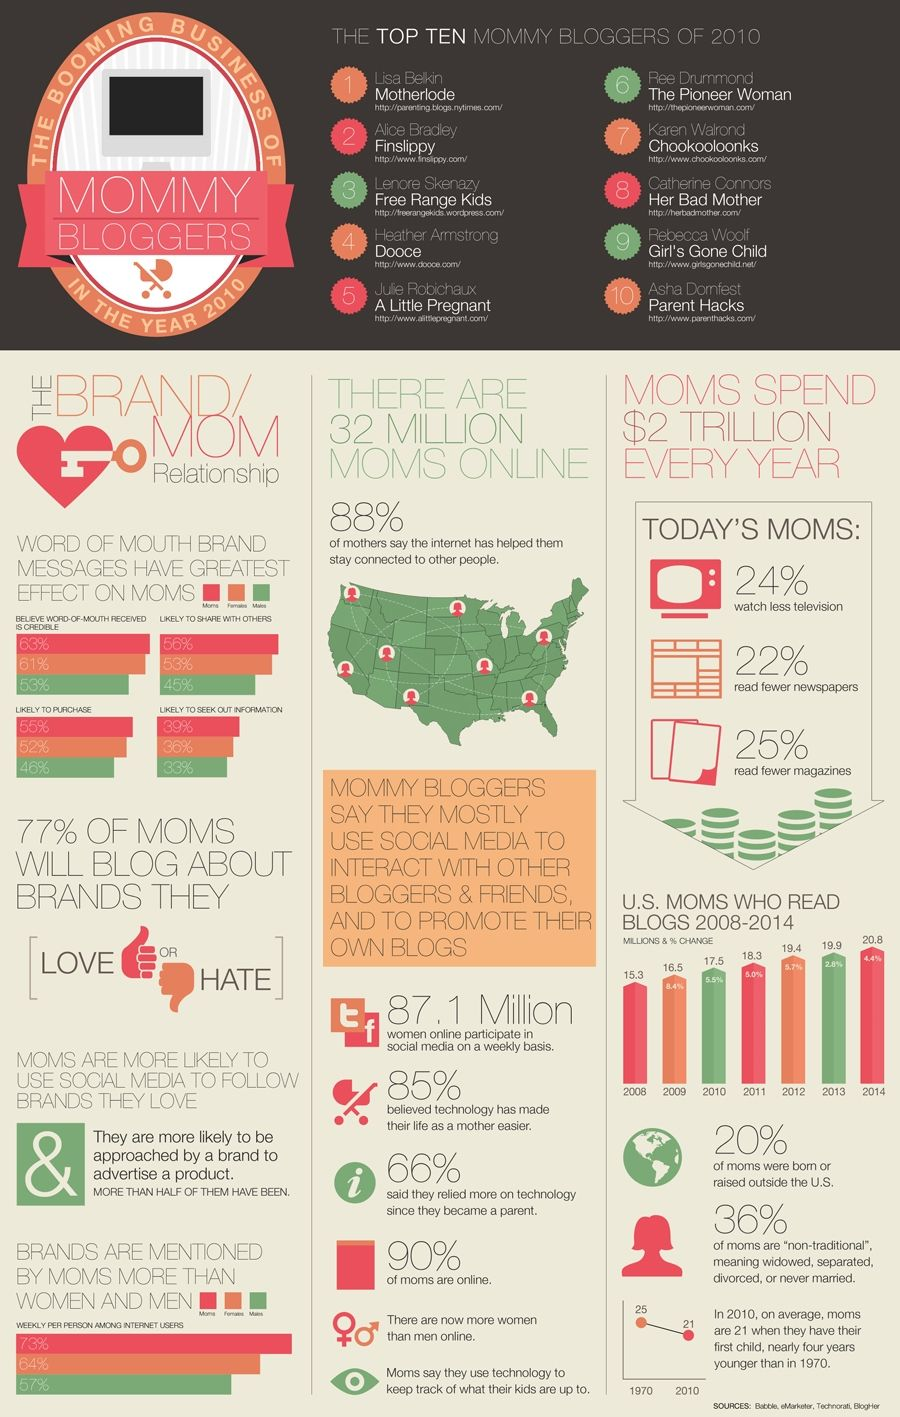 Marketing to moms, Fact about mom bloggers